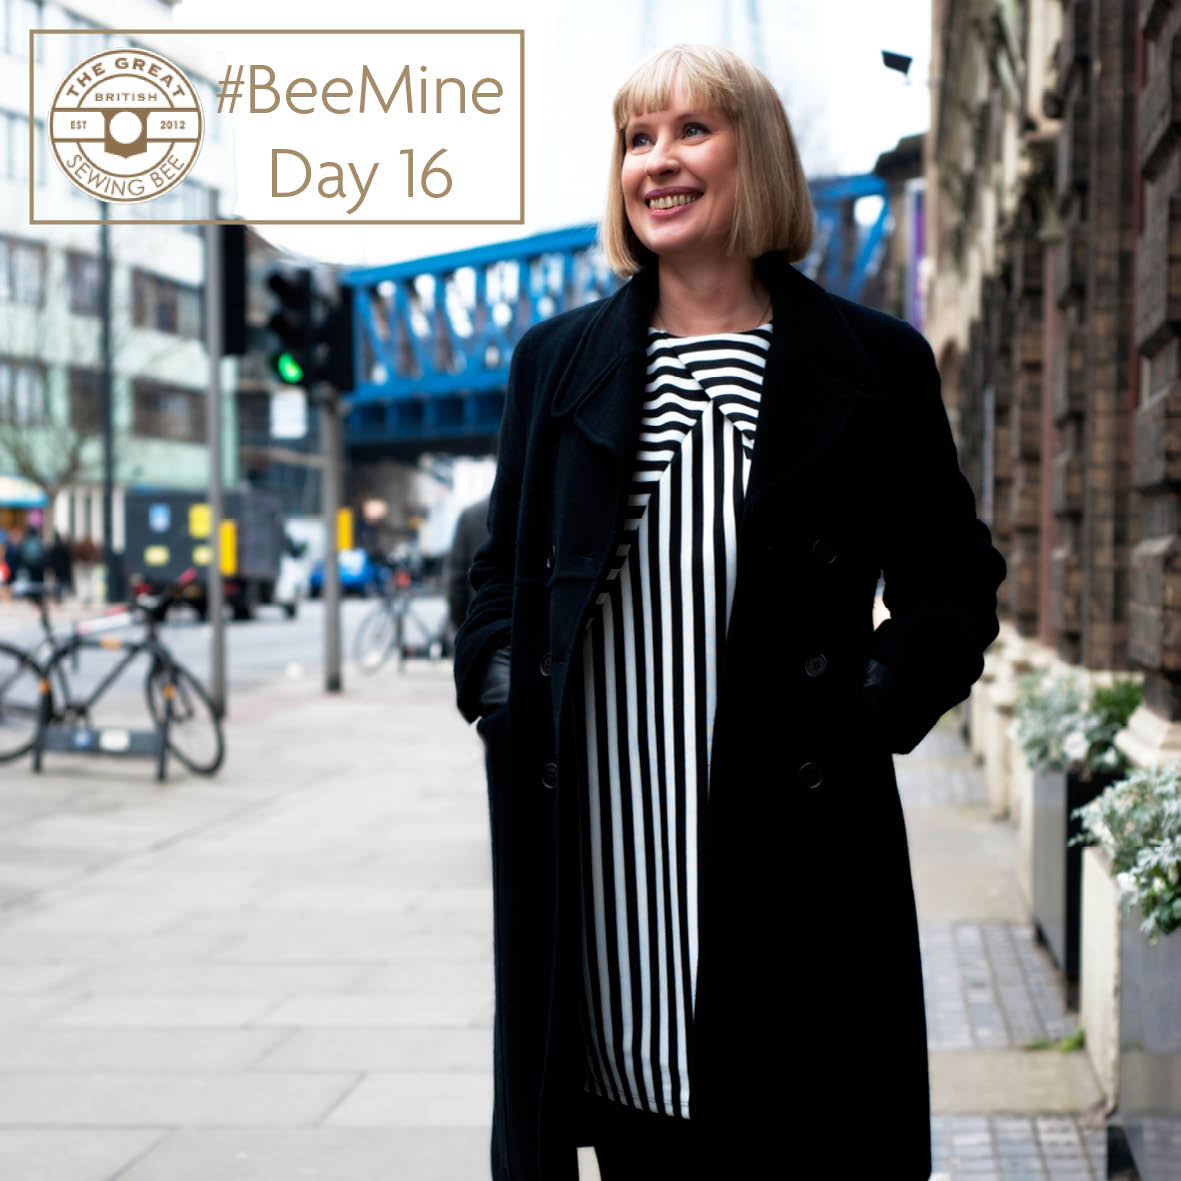 Day 16 #BeeMine- My 30 day blog challenge- Fashion With Fabric